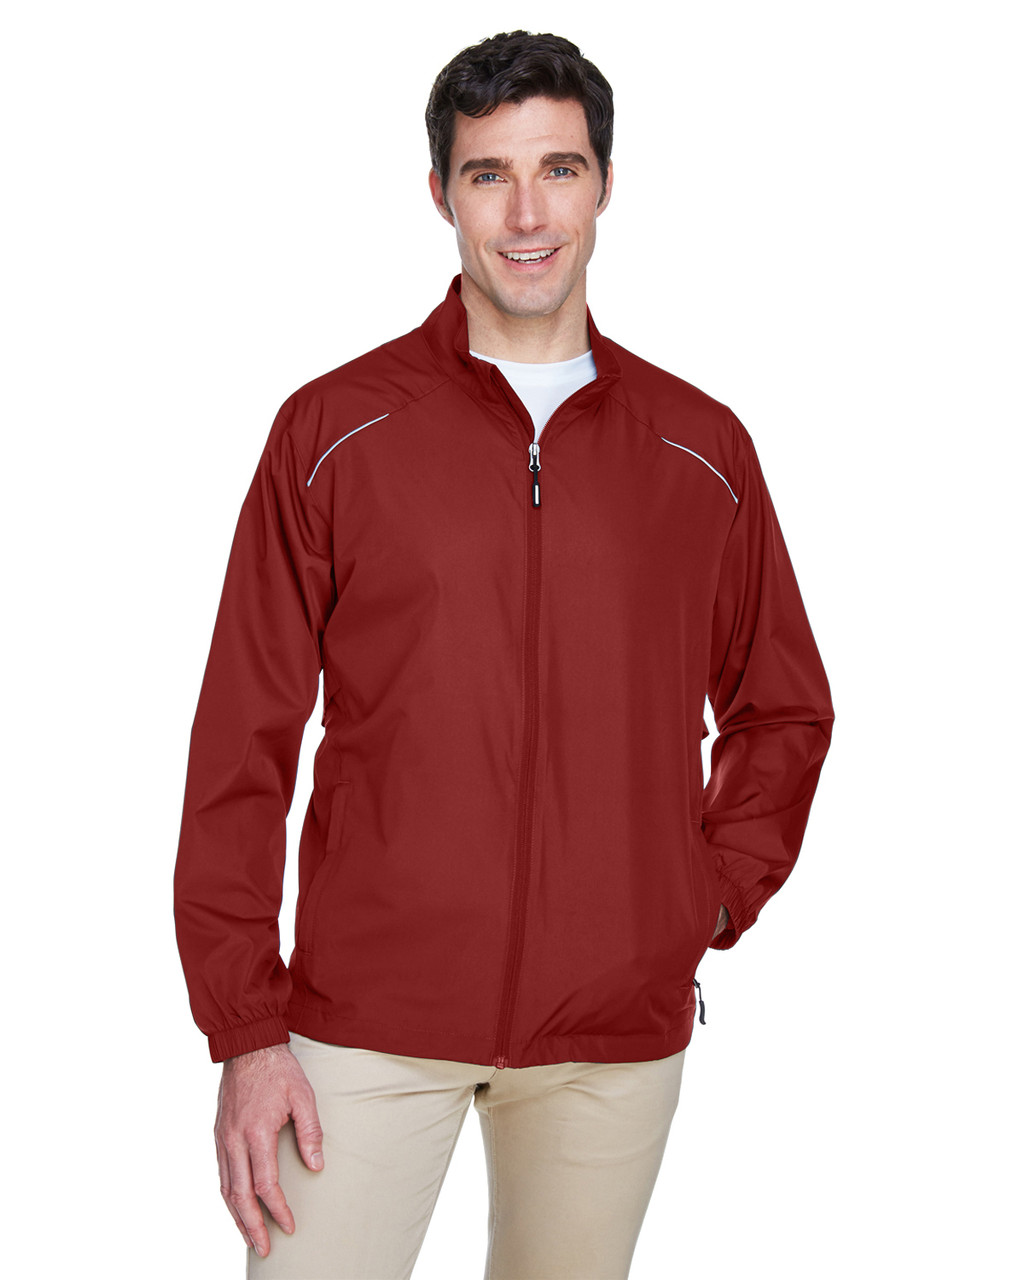 Classic Red - 88183T Ash City - Core 365 Tall Motivate Unlined Lightweight Jacket | Blankclothing.ca